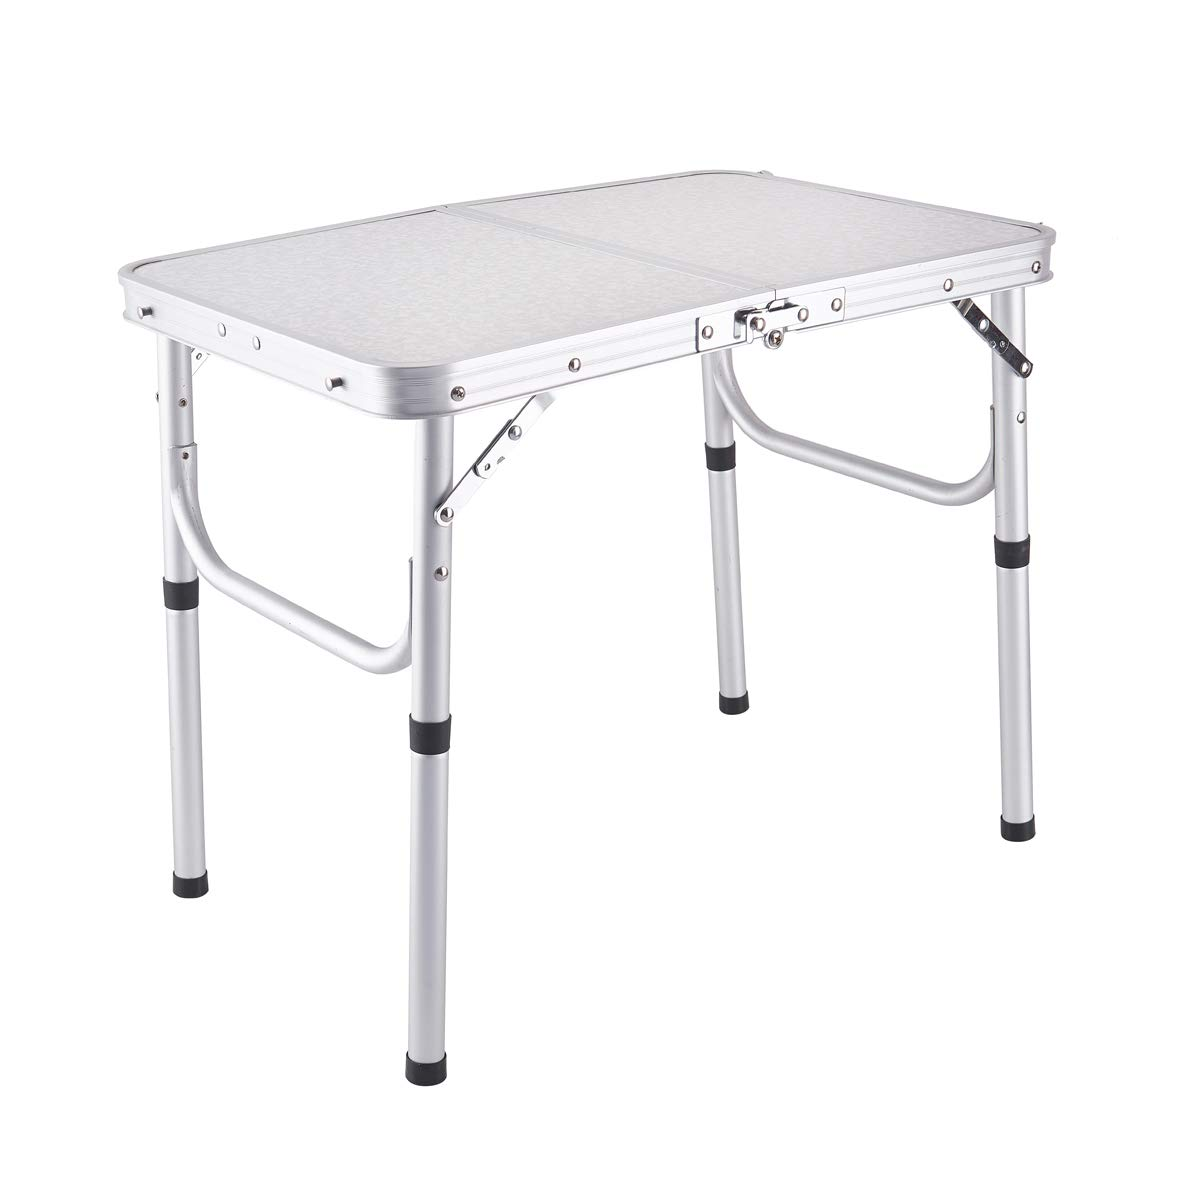 Yiren Lightweight Adjustable Portable Folding Aluminum Camping Table with Carry Handle by Yiren